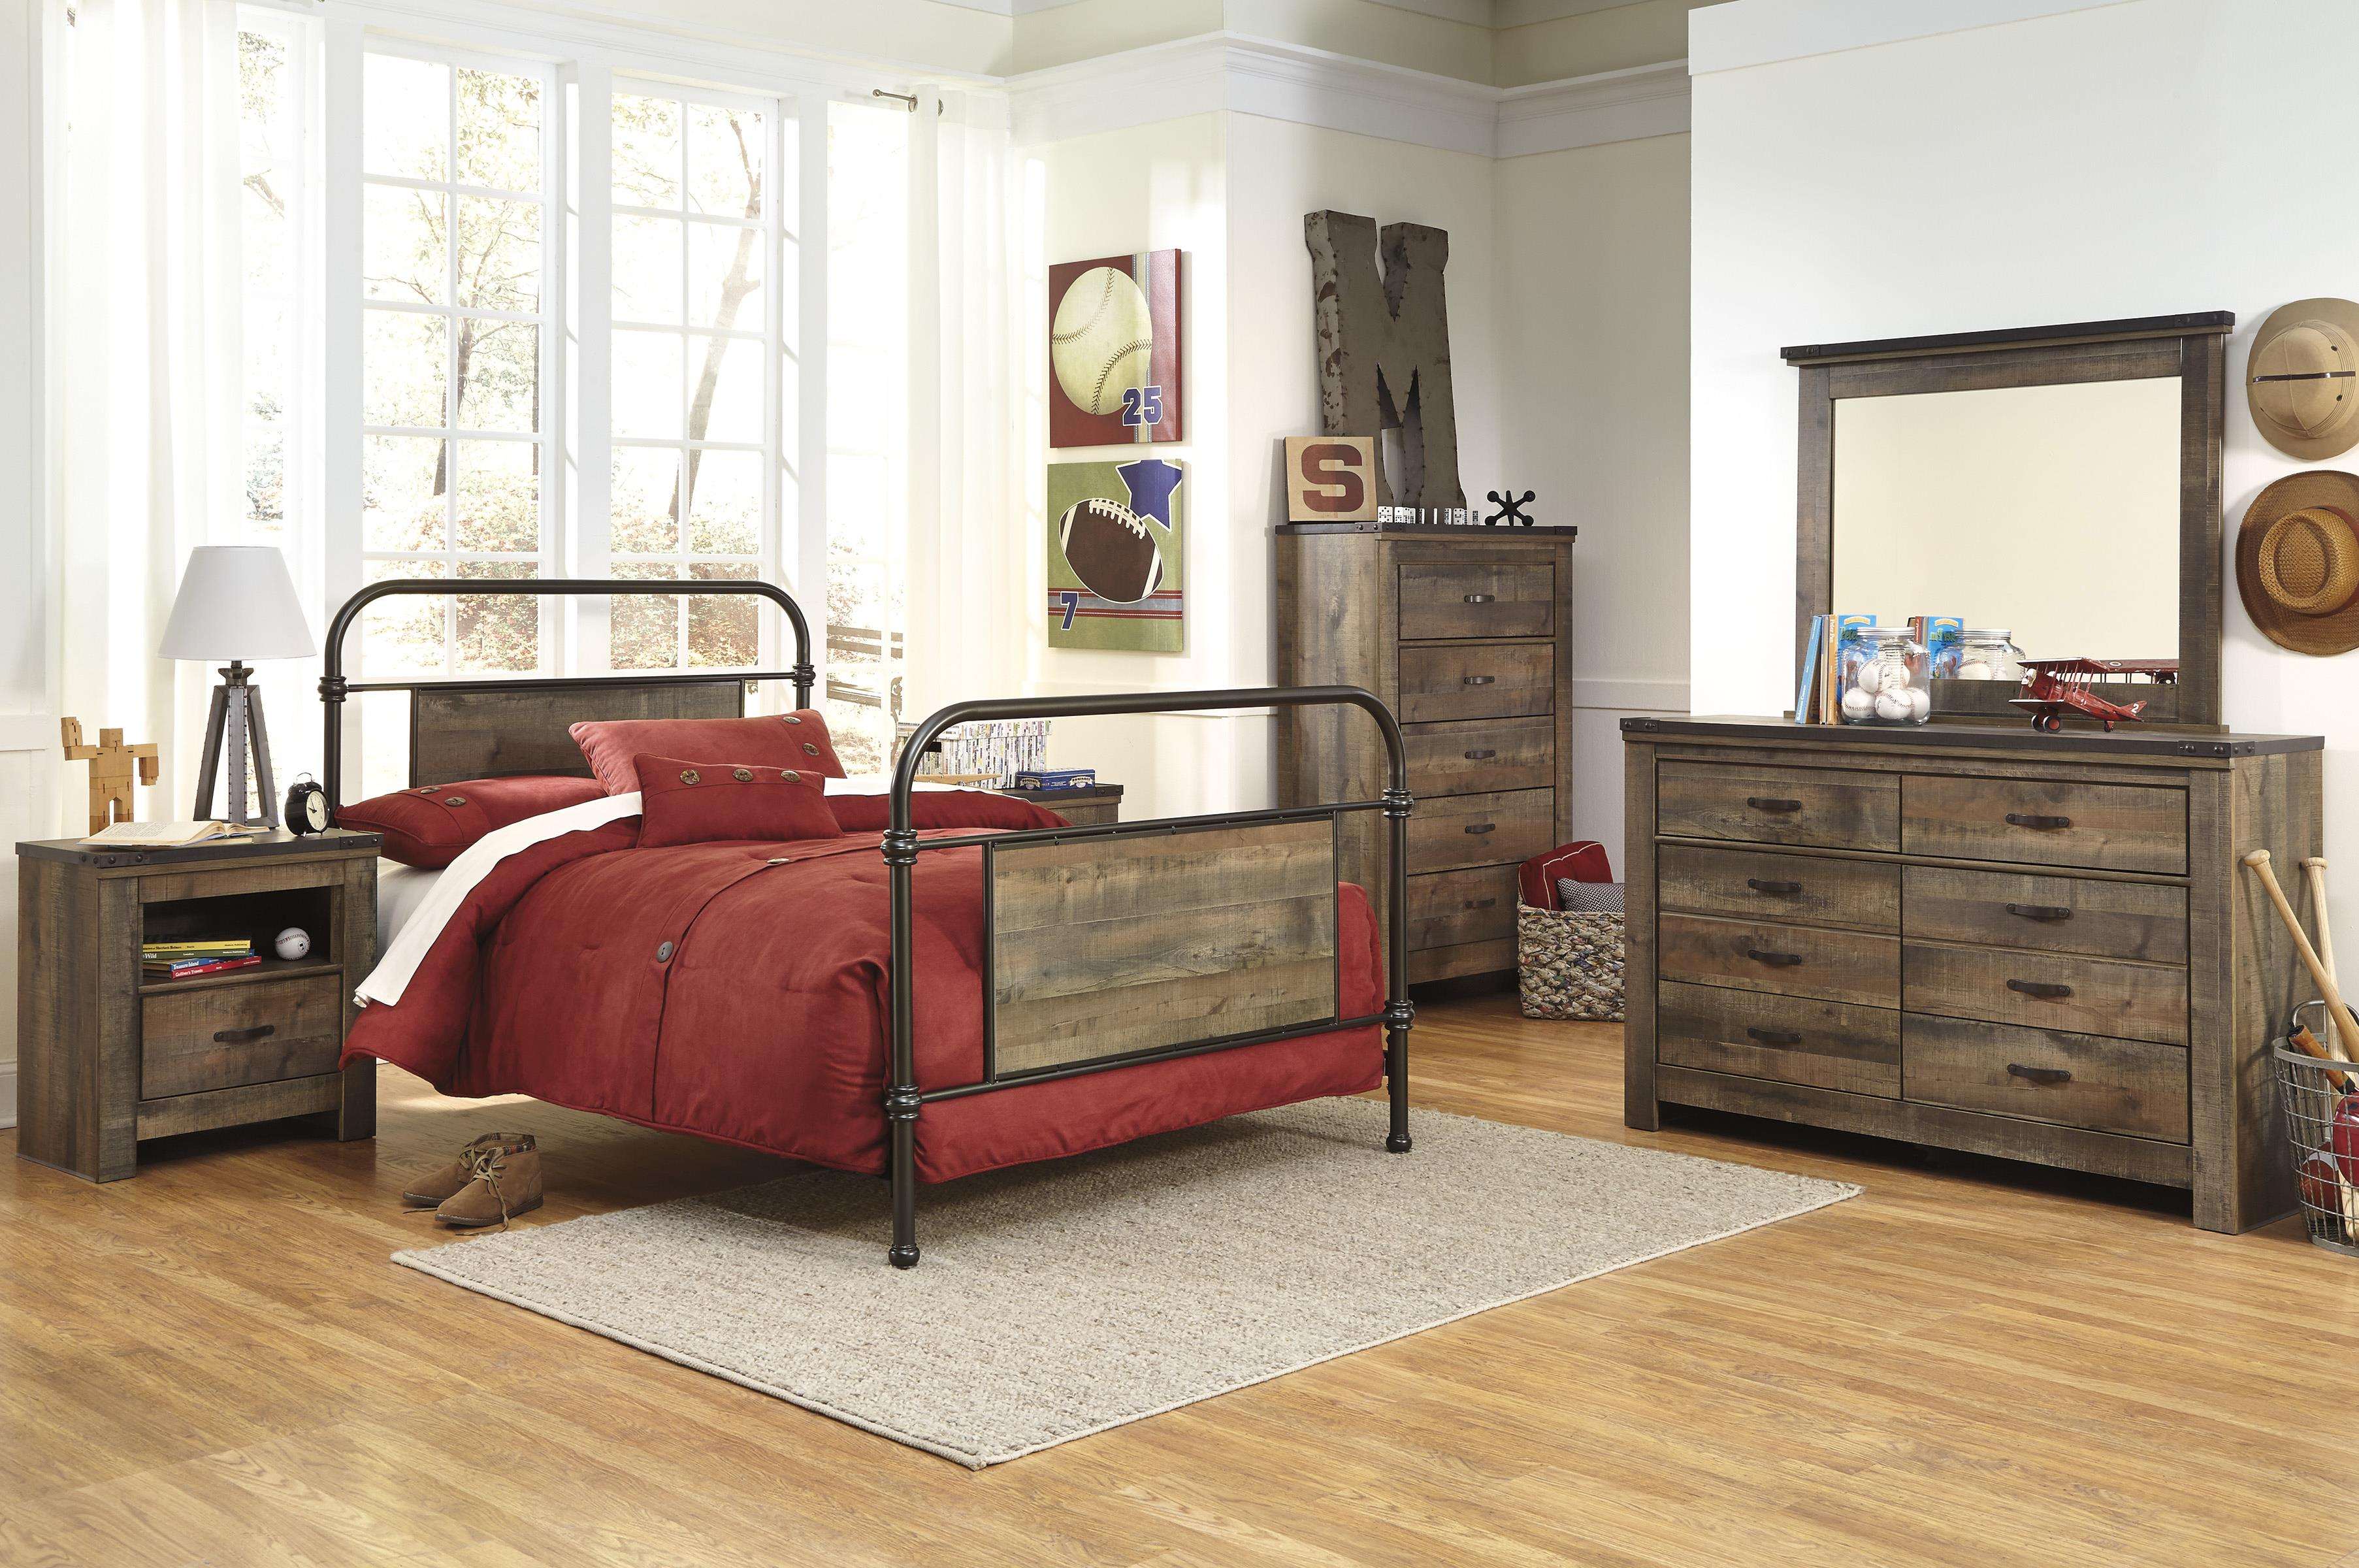 Twin Metal Bed With Rustic Finish Panels